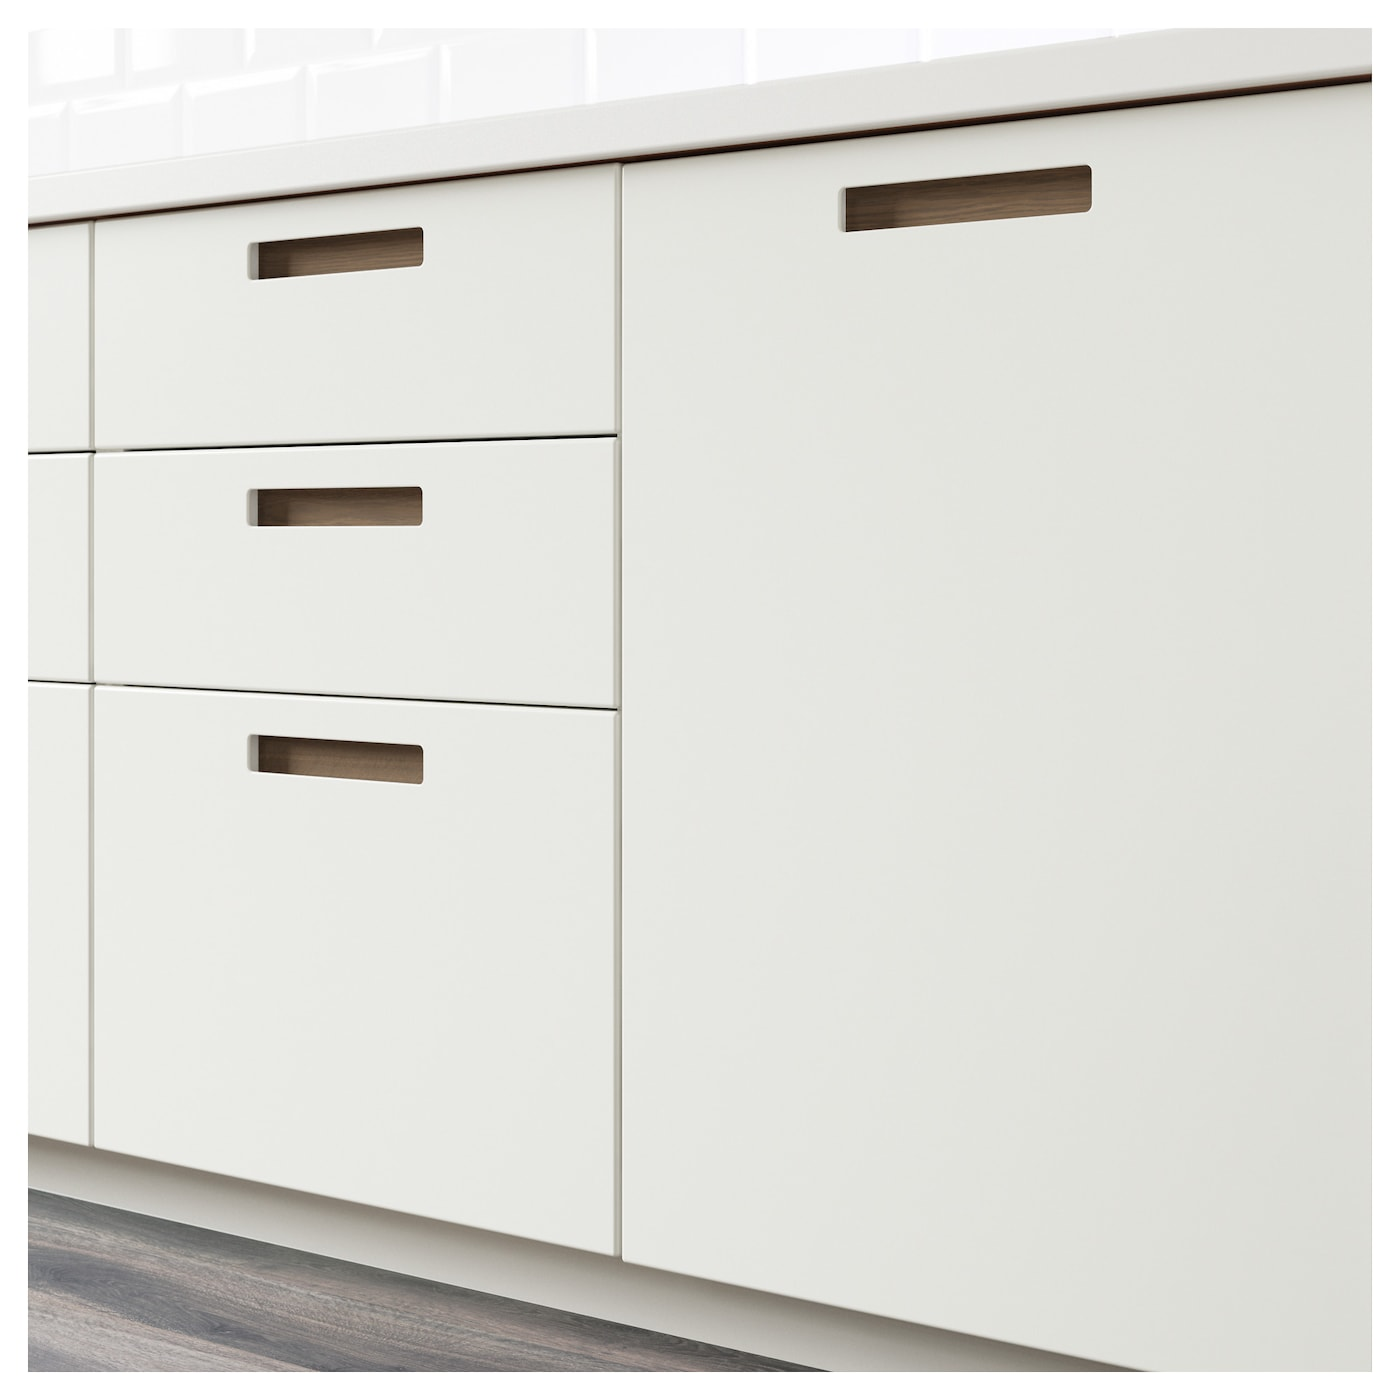 IKEA MÄRSTA drawer front 25 year guarantee. Read about the terms in the guarantee brochure.